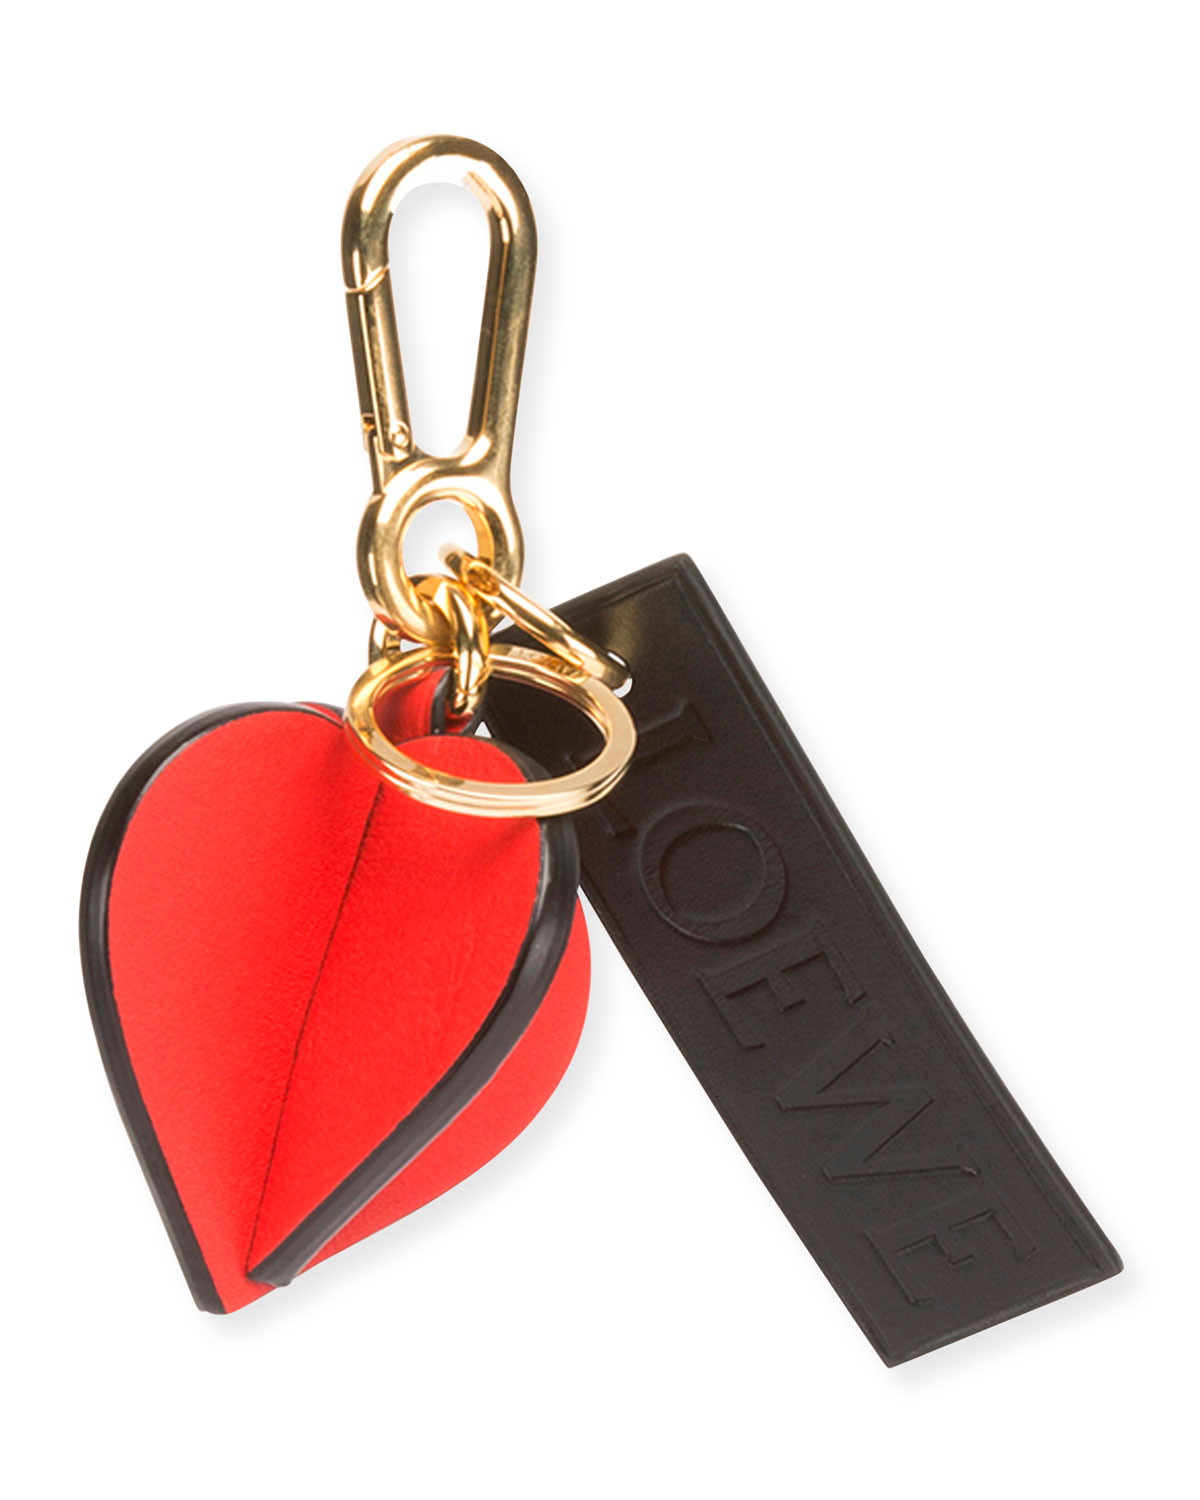 Loewe Heart Charm Bag Accessory in Red and Black Calfskin and Brass QUBFxSv